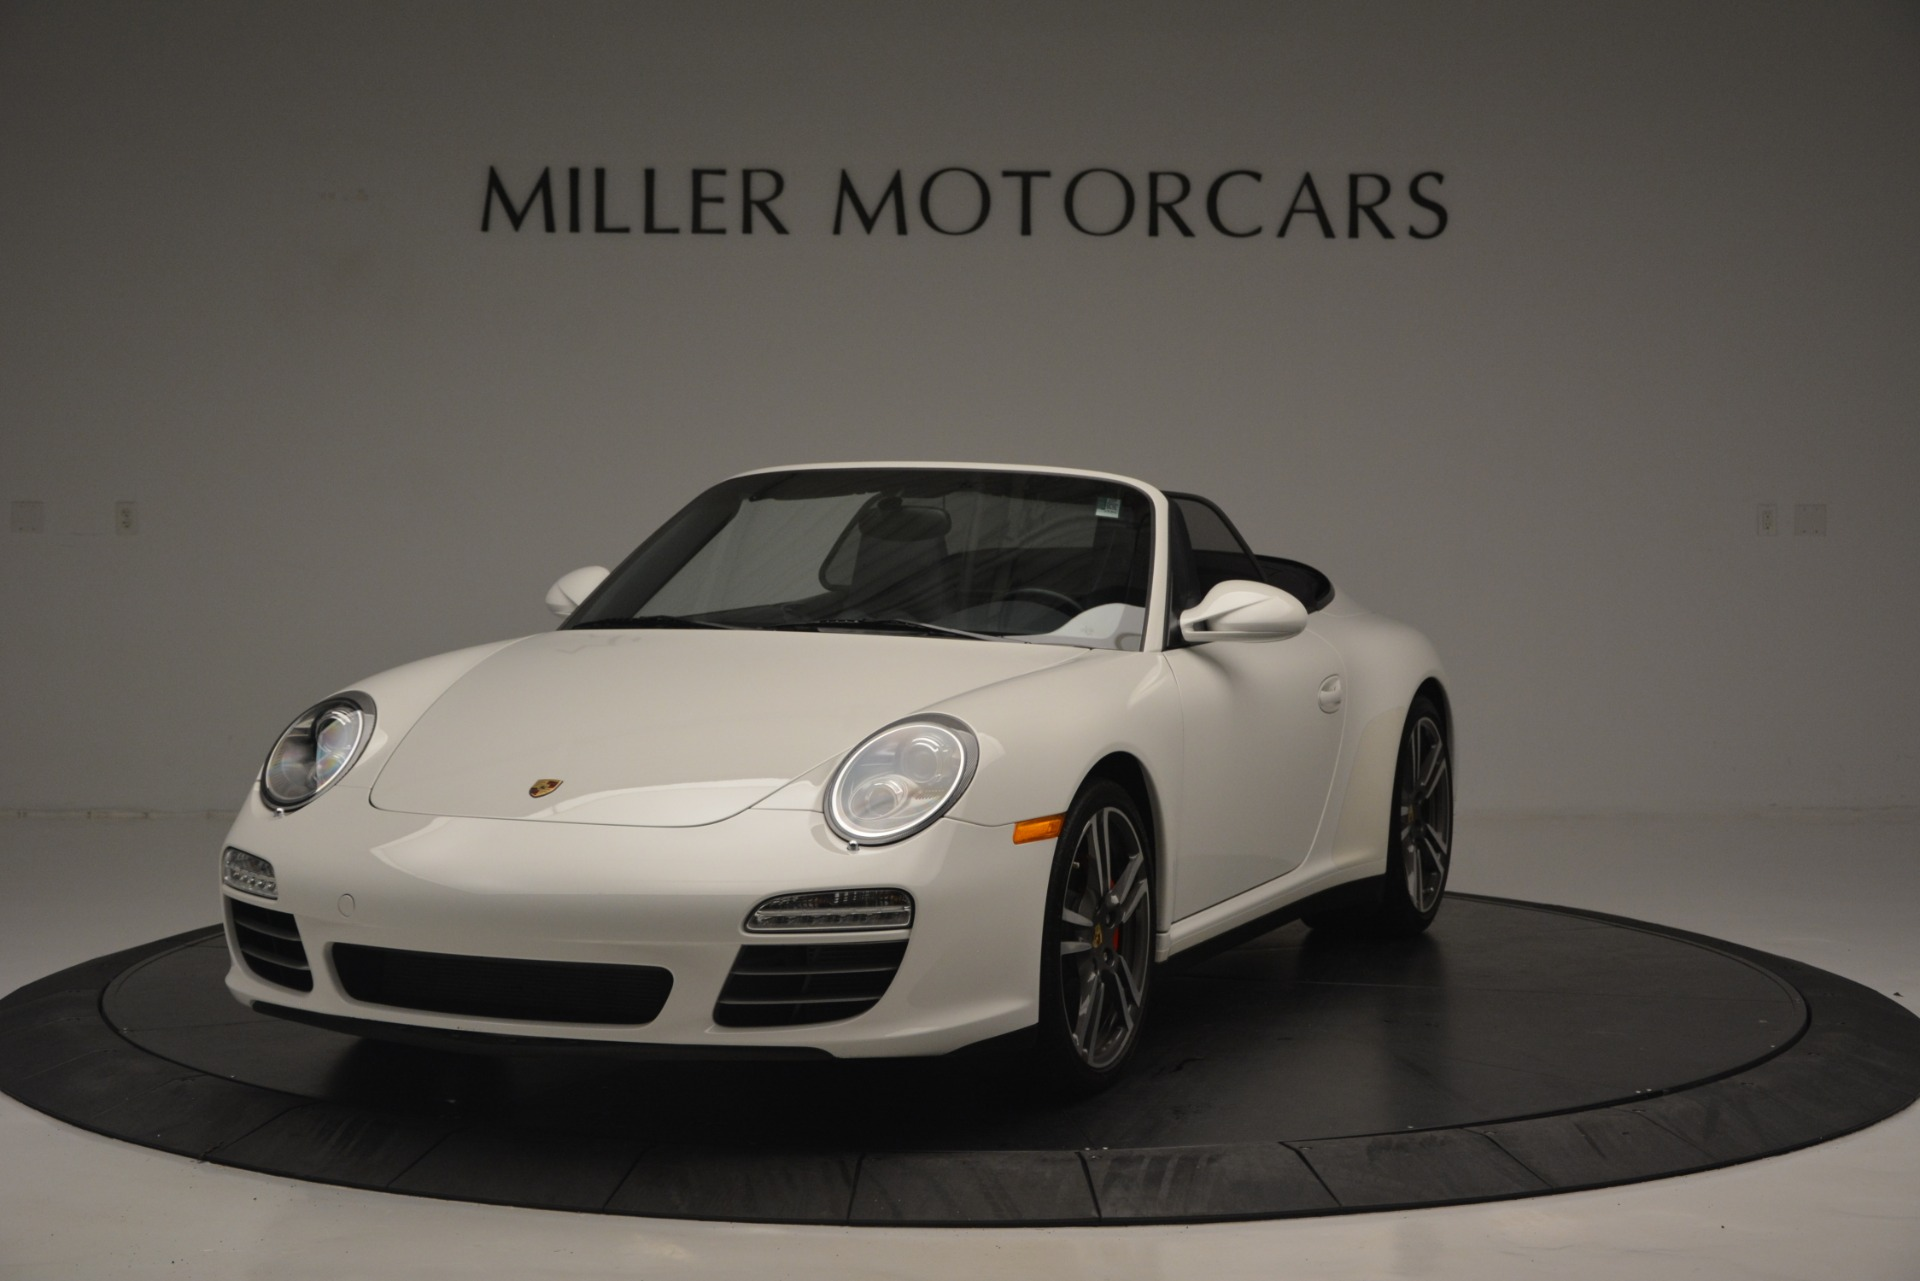 Used 2011 Porsche 911 Carrera 4S for sale Sold at Aston Martin of Greenwich in Greenwich CT 06830 1